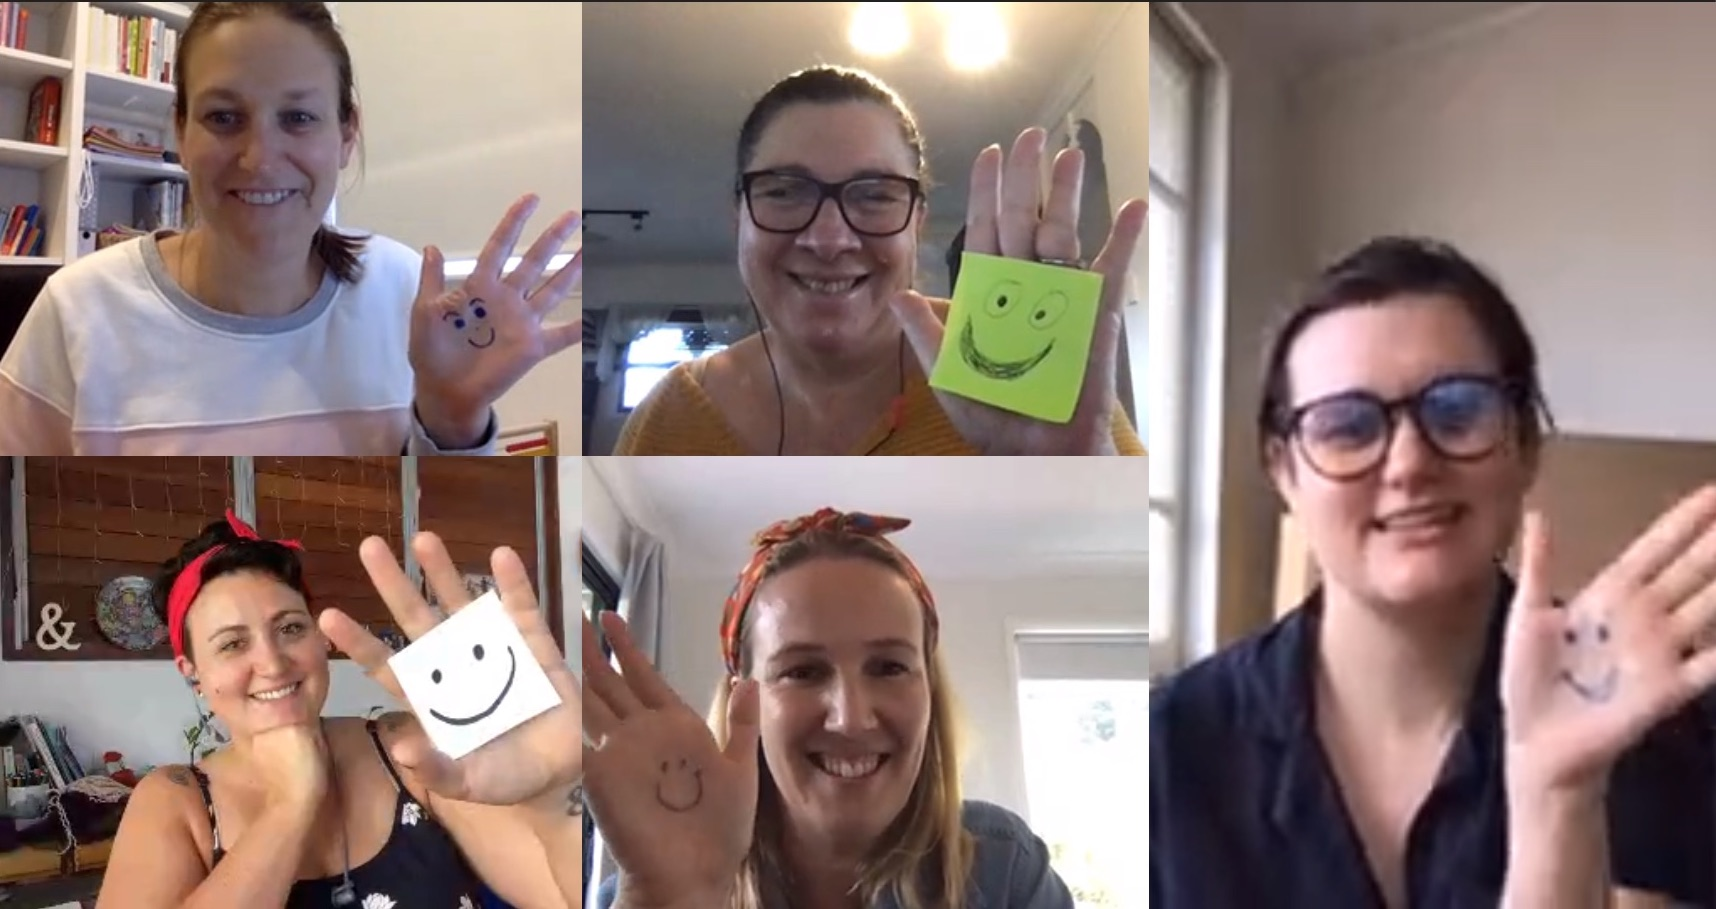 Members of The Social Deck team waving at the camera with smiley faces drawn on their hands for National Volunteer Week.